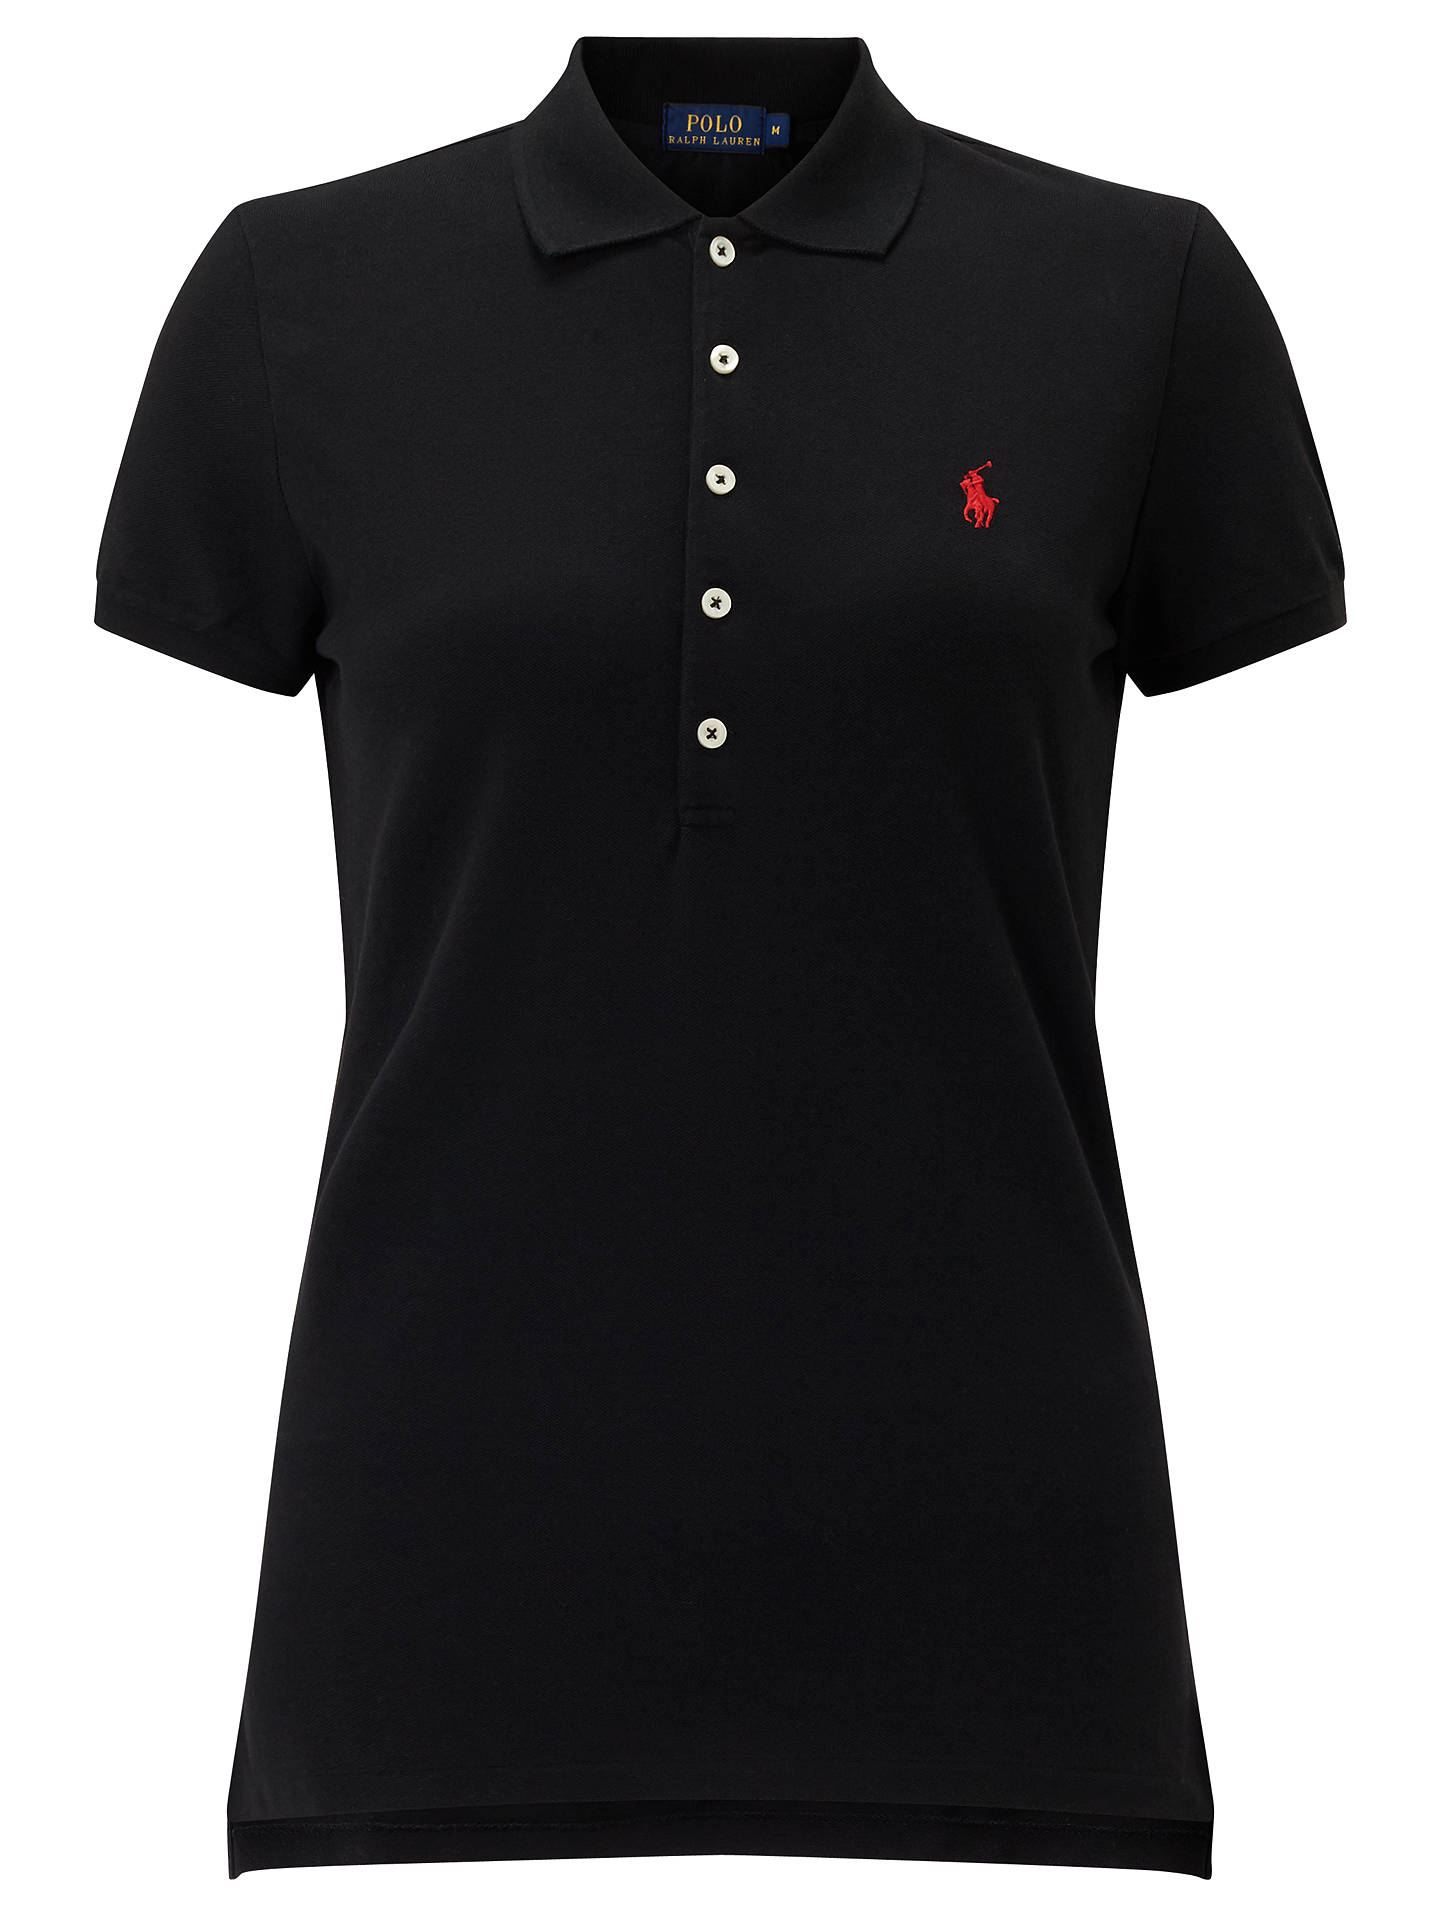 4c877d7d5 Polo Ralph Lauren Julie Skinny Fit Stretch Polo Shirt at John Lewis ...